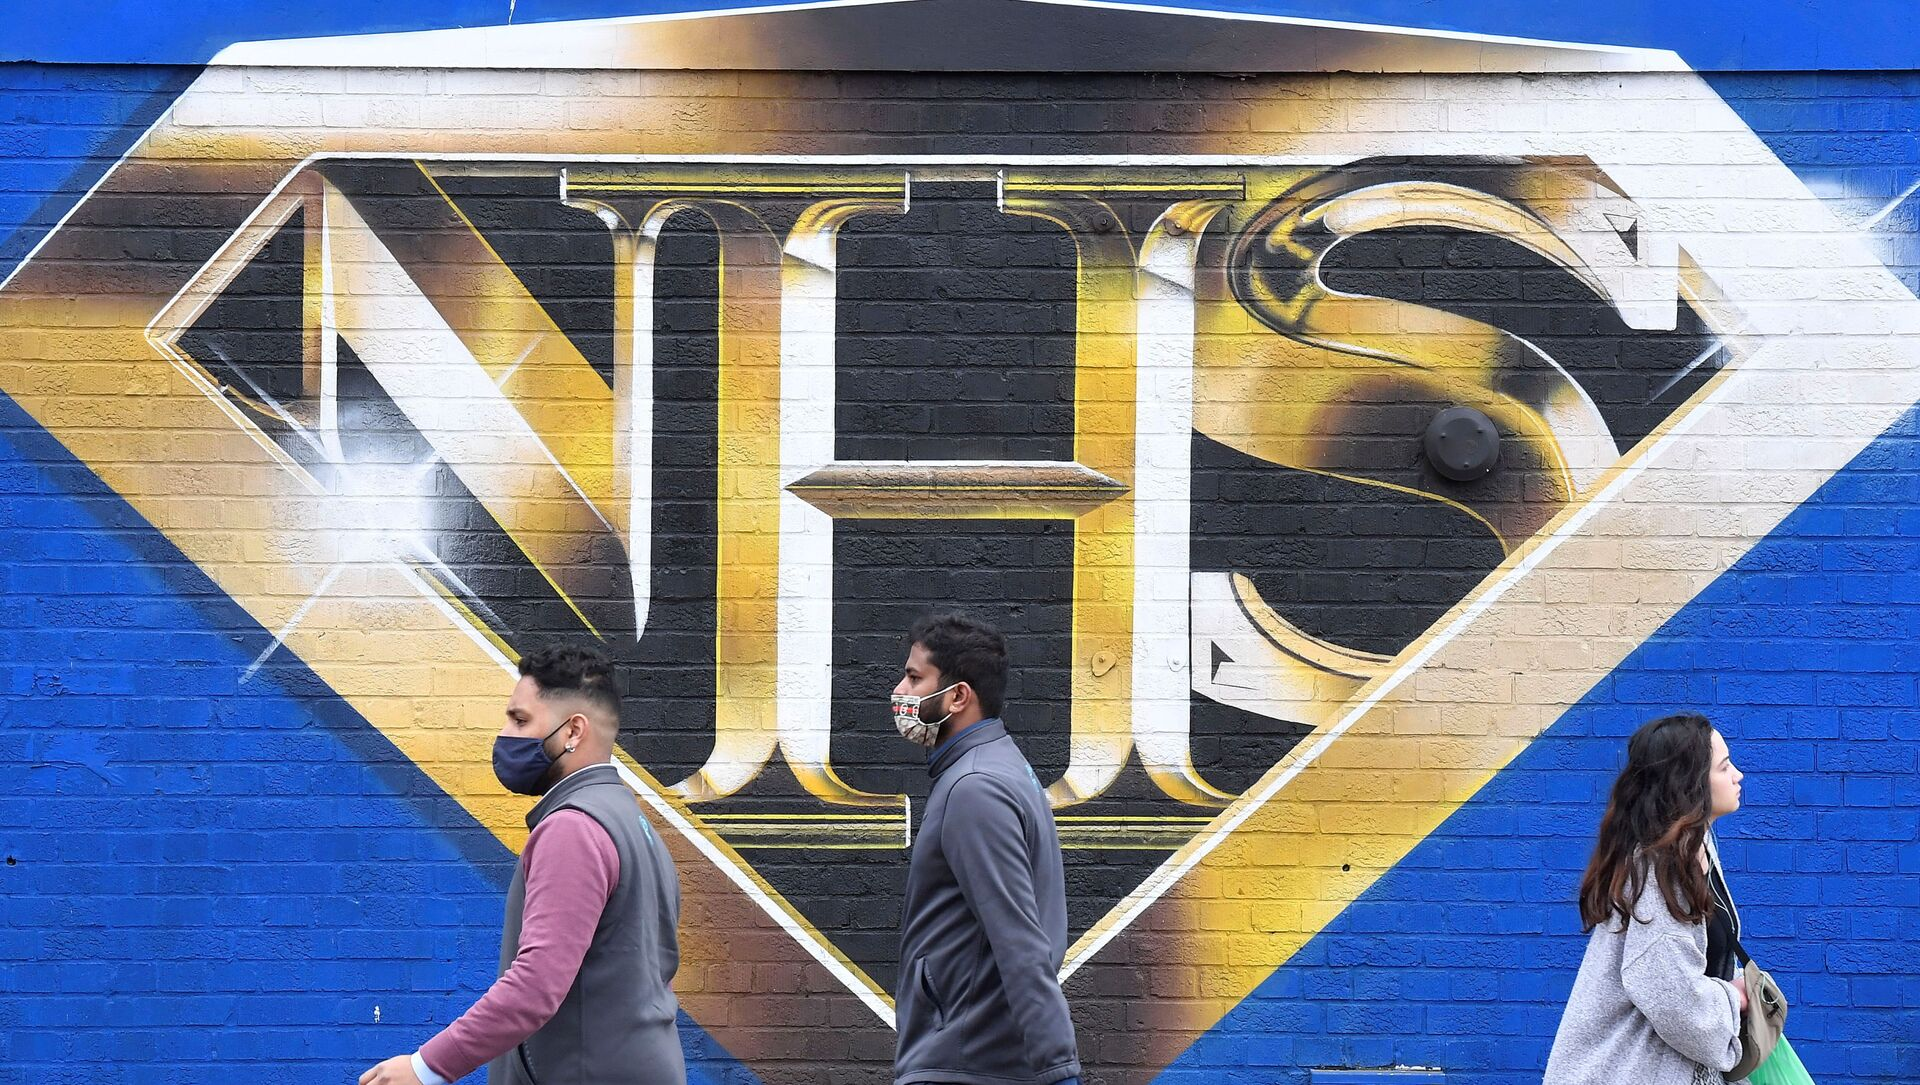 People walk past a mural praising the NHS (National Health Service) amidst the continuation of the coronavirus disease (COVID-19) pandemic, London, Britain, March 5, 2021.  - Sputnik International, 1920, 23.07.2021